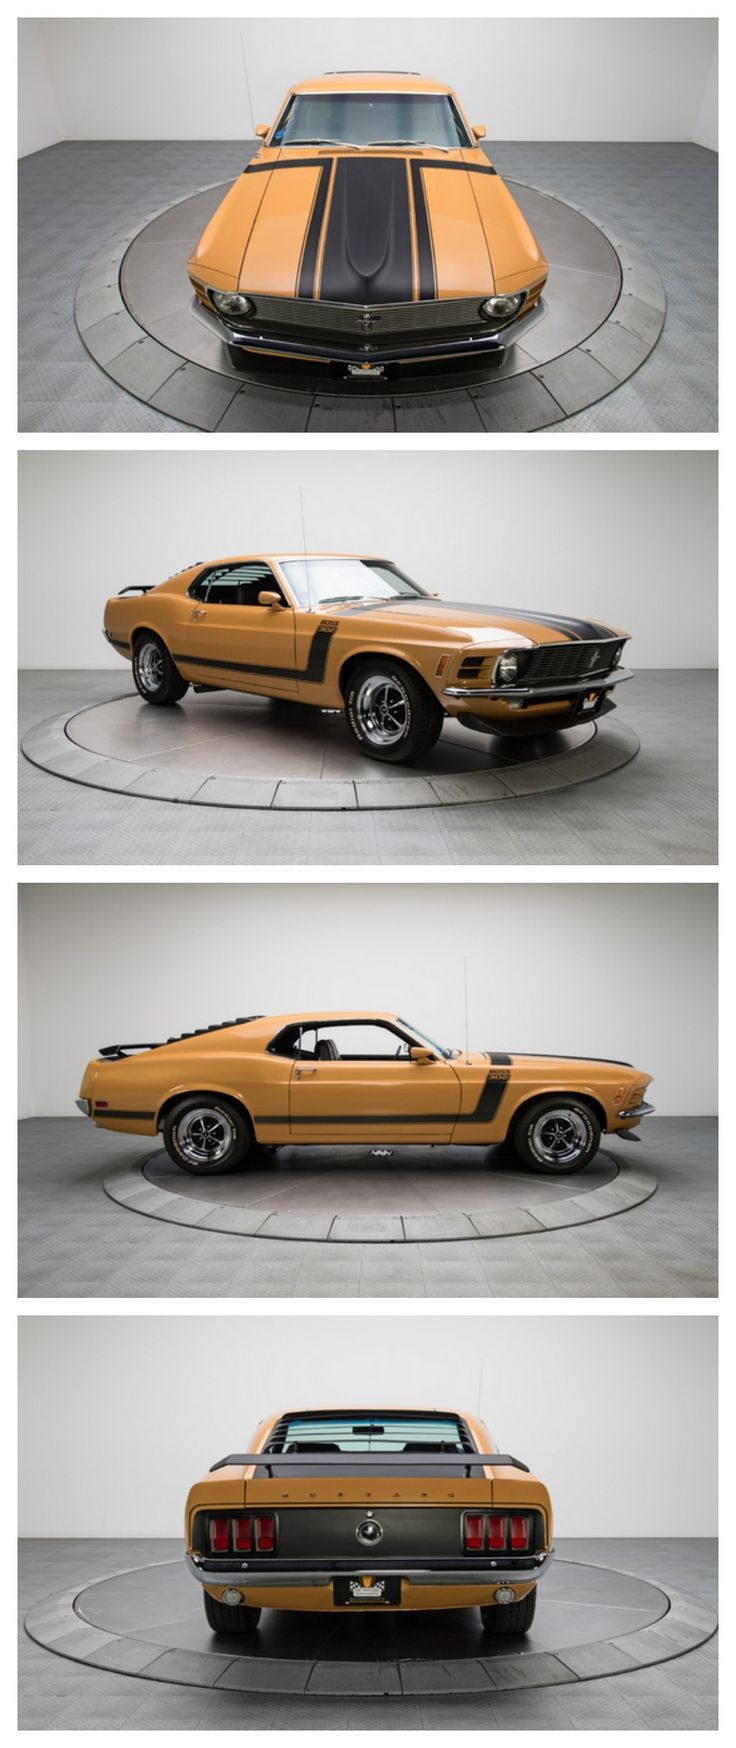 This special-order Speed Yellow 1968 Shelby GT500KR was destined for the crusher. Thankfully someone saw its potential and restored it into a masterpiece #FastandFuriousFriday